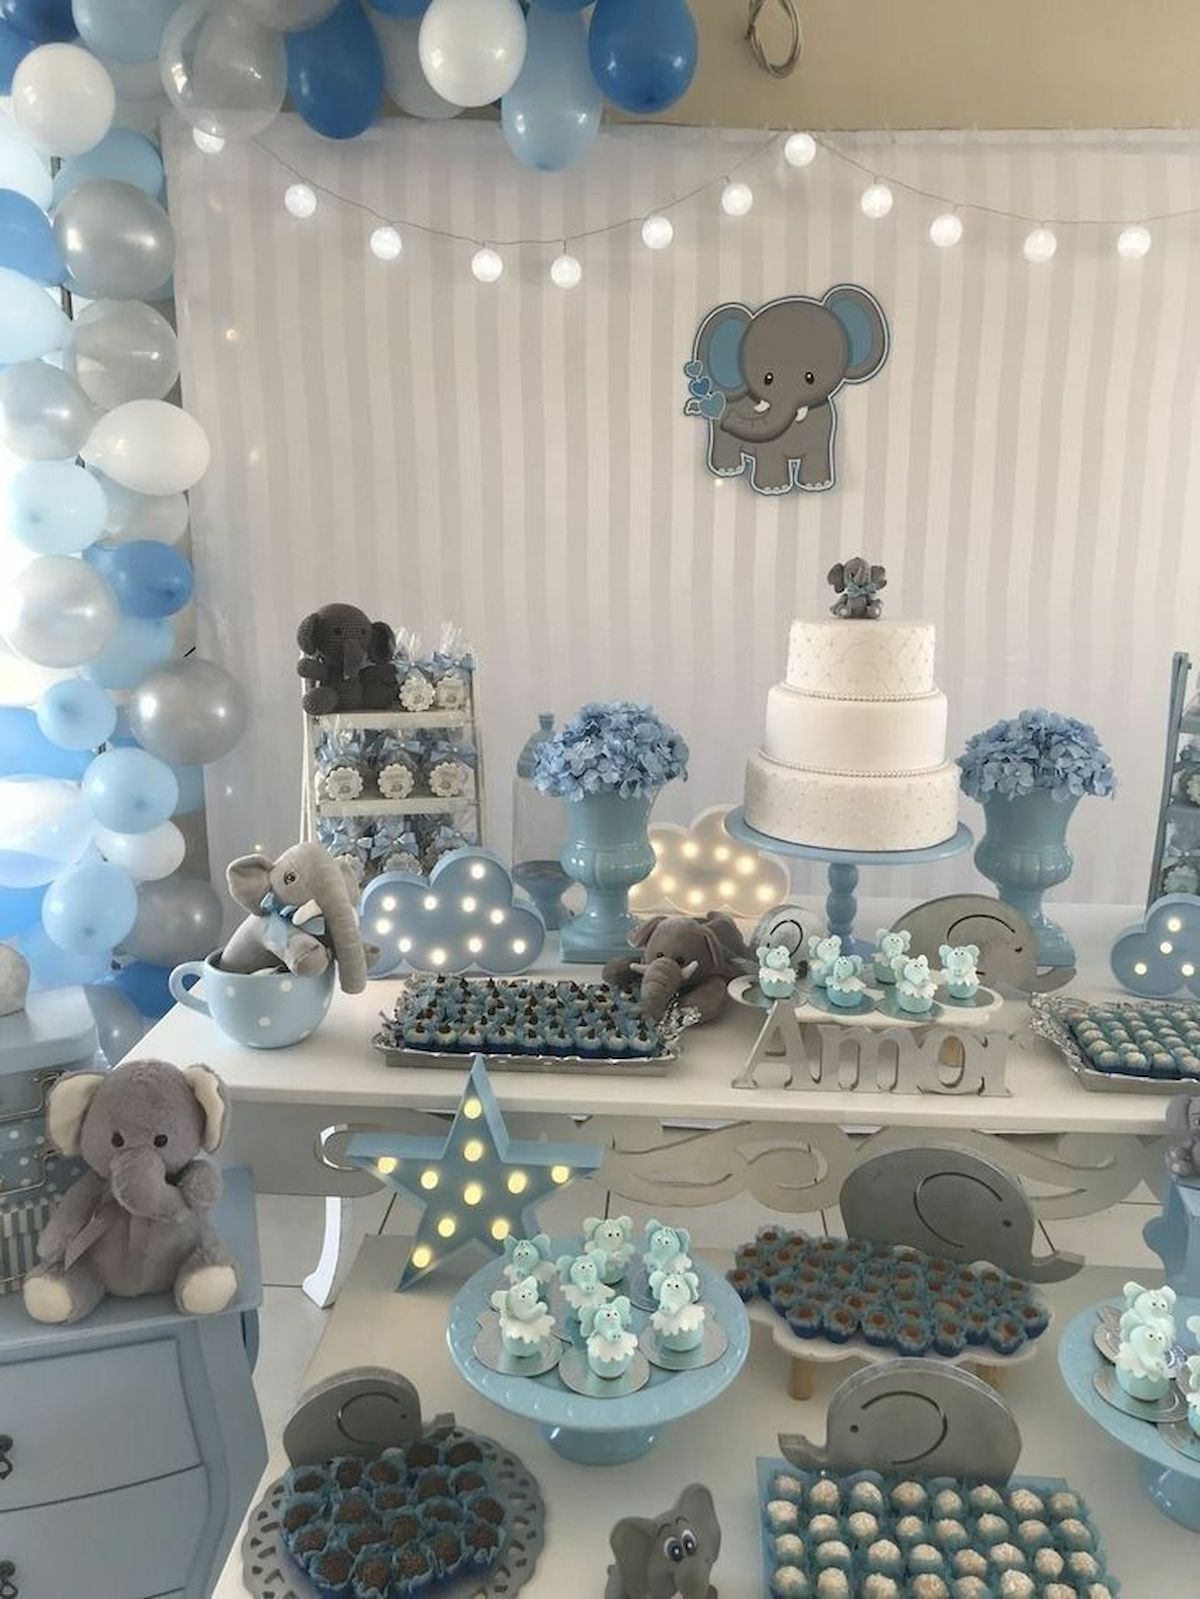 50 Awesome Baby Shower Themes And Decorating Ideas For Boy With